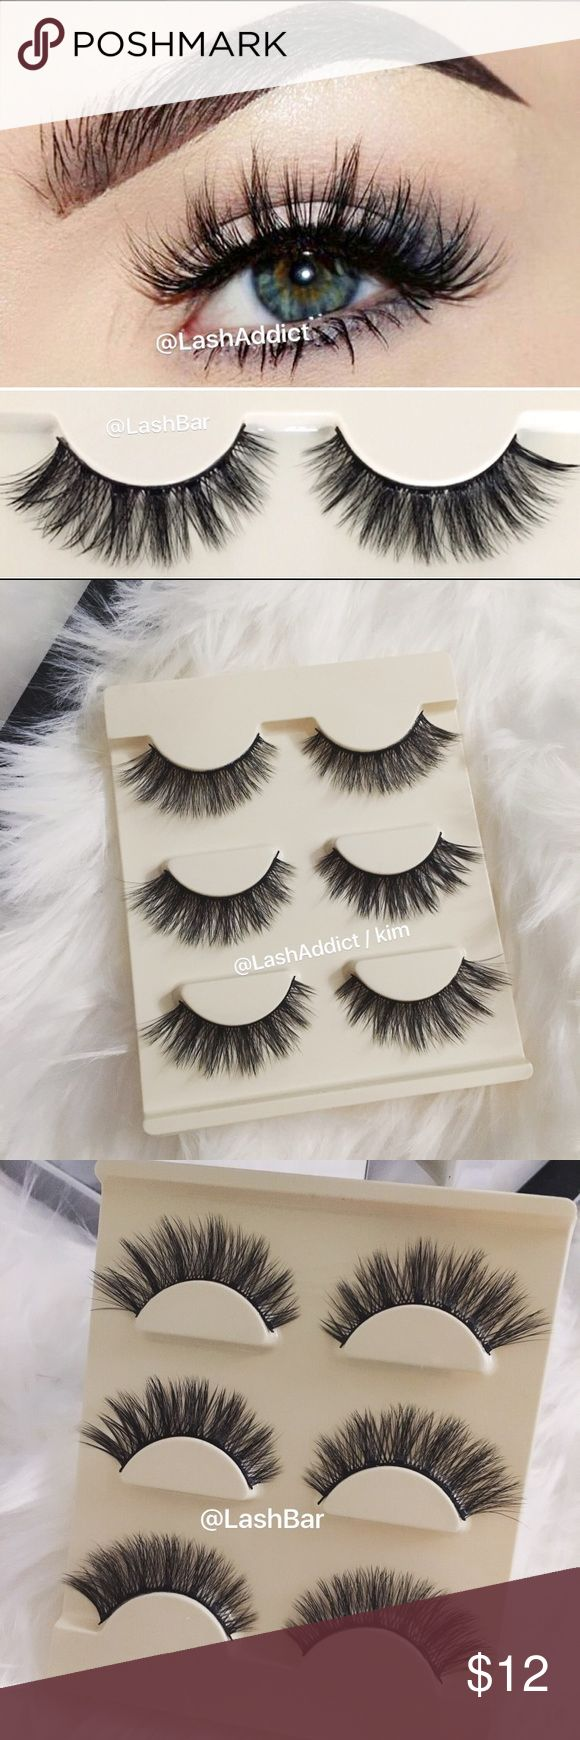 3 Pairs Mink Lashes 3D eyelashes lilly velour fur Long Flair Mink Lashes 3 pack mink  NO LID / comes with tray only  ❤️PRICE IS FIRM  ❤️OFFERS WILL BE IGNORED  Flutter wispies  •100% Real Mink Fur Strip Lashes •Handcrafted High Quality Lashes •Will last up to 25 applications, handle with care. •All pictures are mine @Lash Addict/Kim • 3 pairs mink eyelashes lashes  No Glue  ~ All orders placed after 3PM (EST) time will be shipped out the next day. All orders are processed within 1 business…